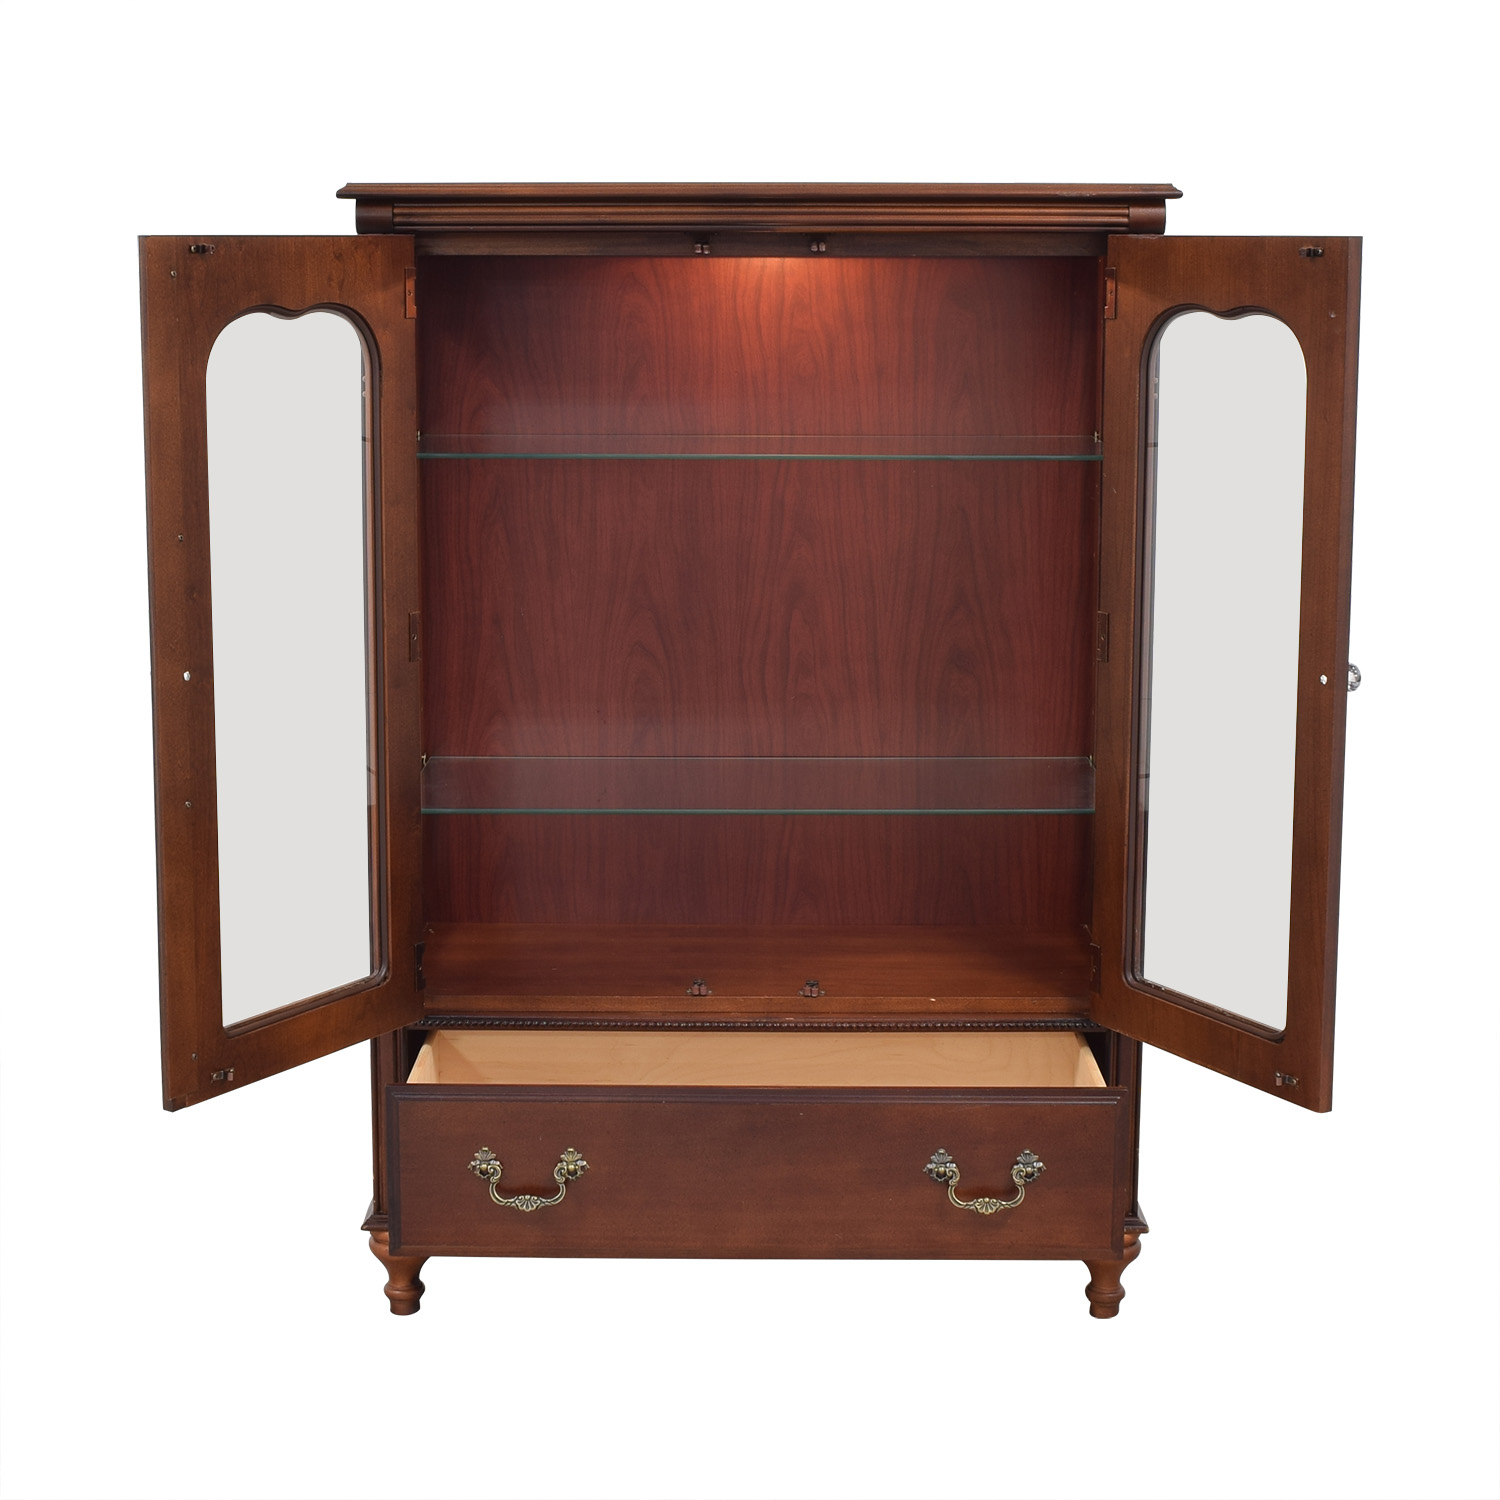 Stanley Furniture Chest Cabinet sale